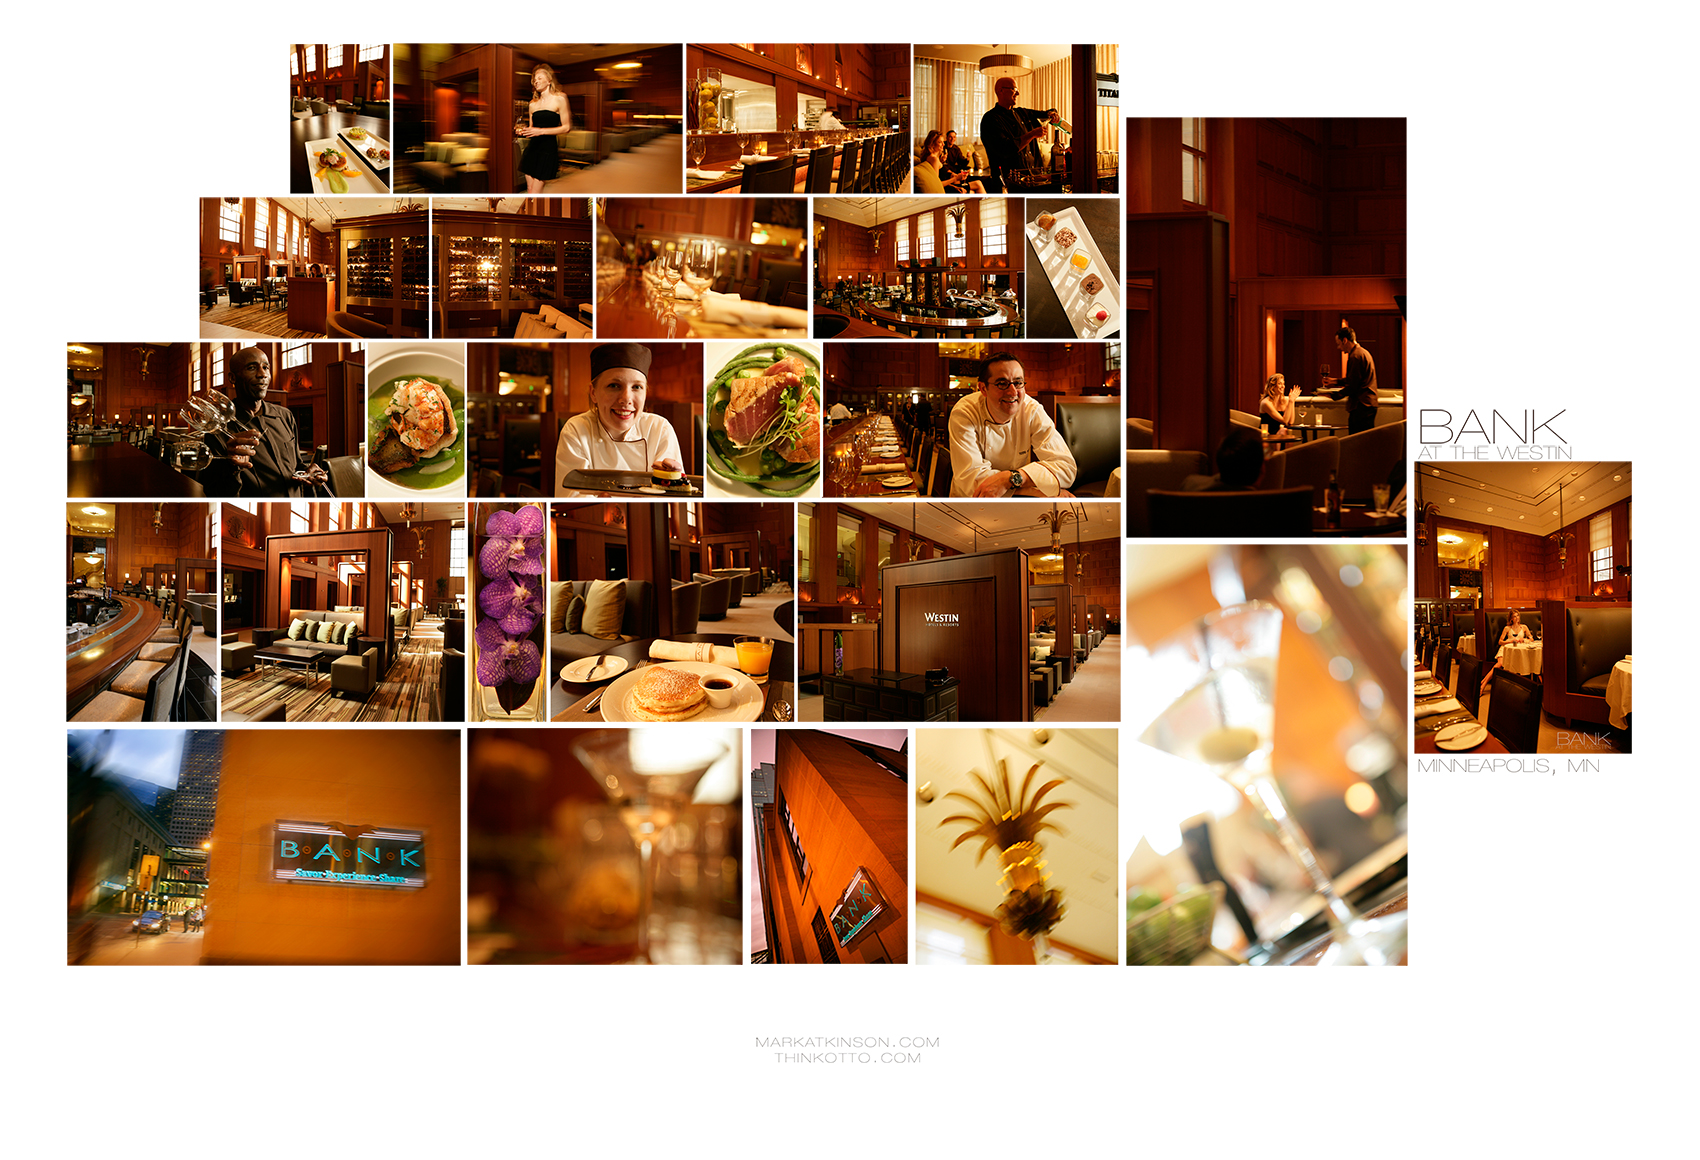 Hotel and resort photography (above, the BANK at the WESTIN, Minneapolis)